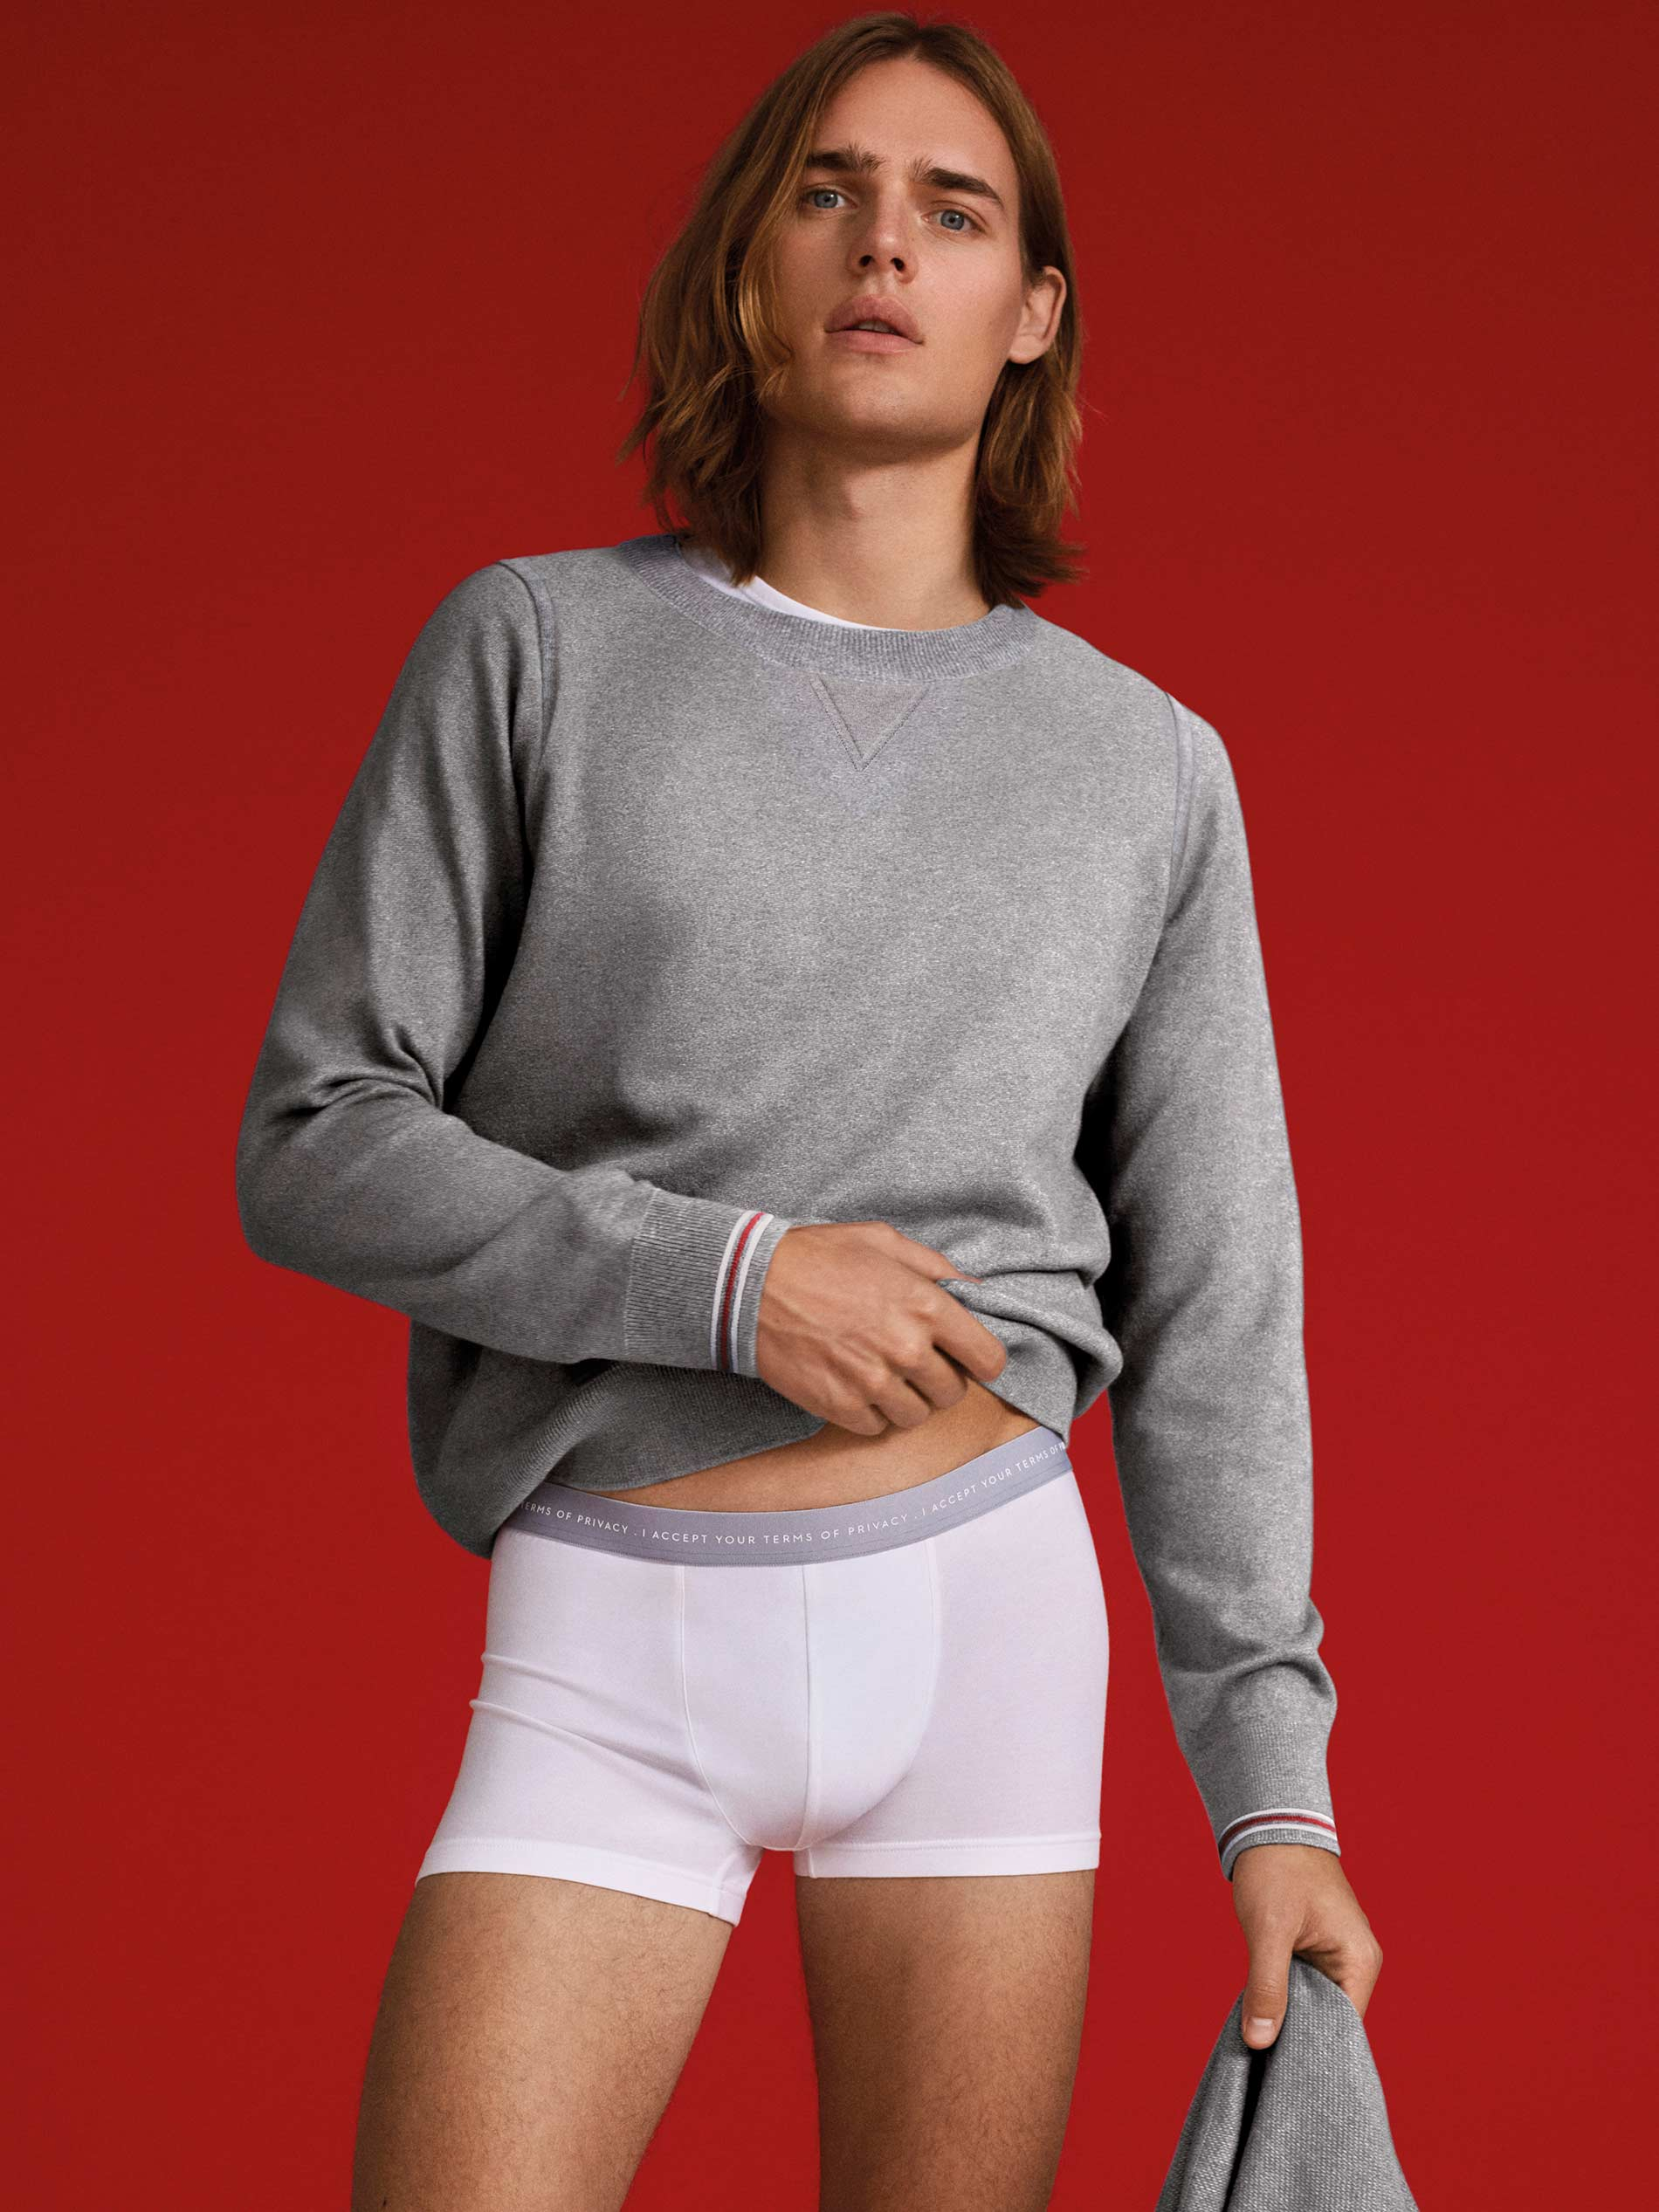 """Man wears shorties with slogan """"I accept your terms of privacy"""" on the waistband from the basics range of the RE:THINK series 